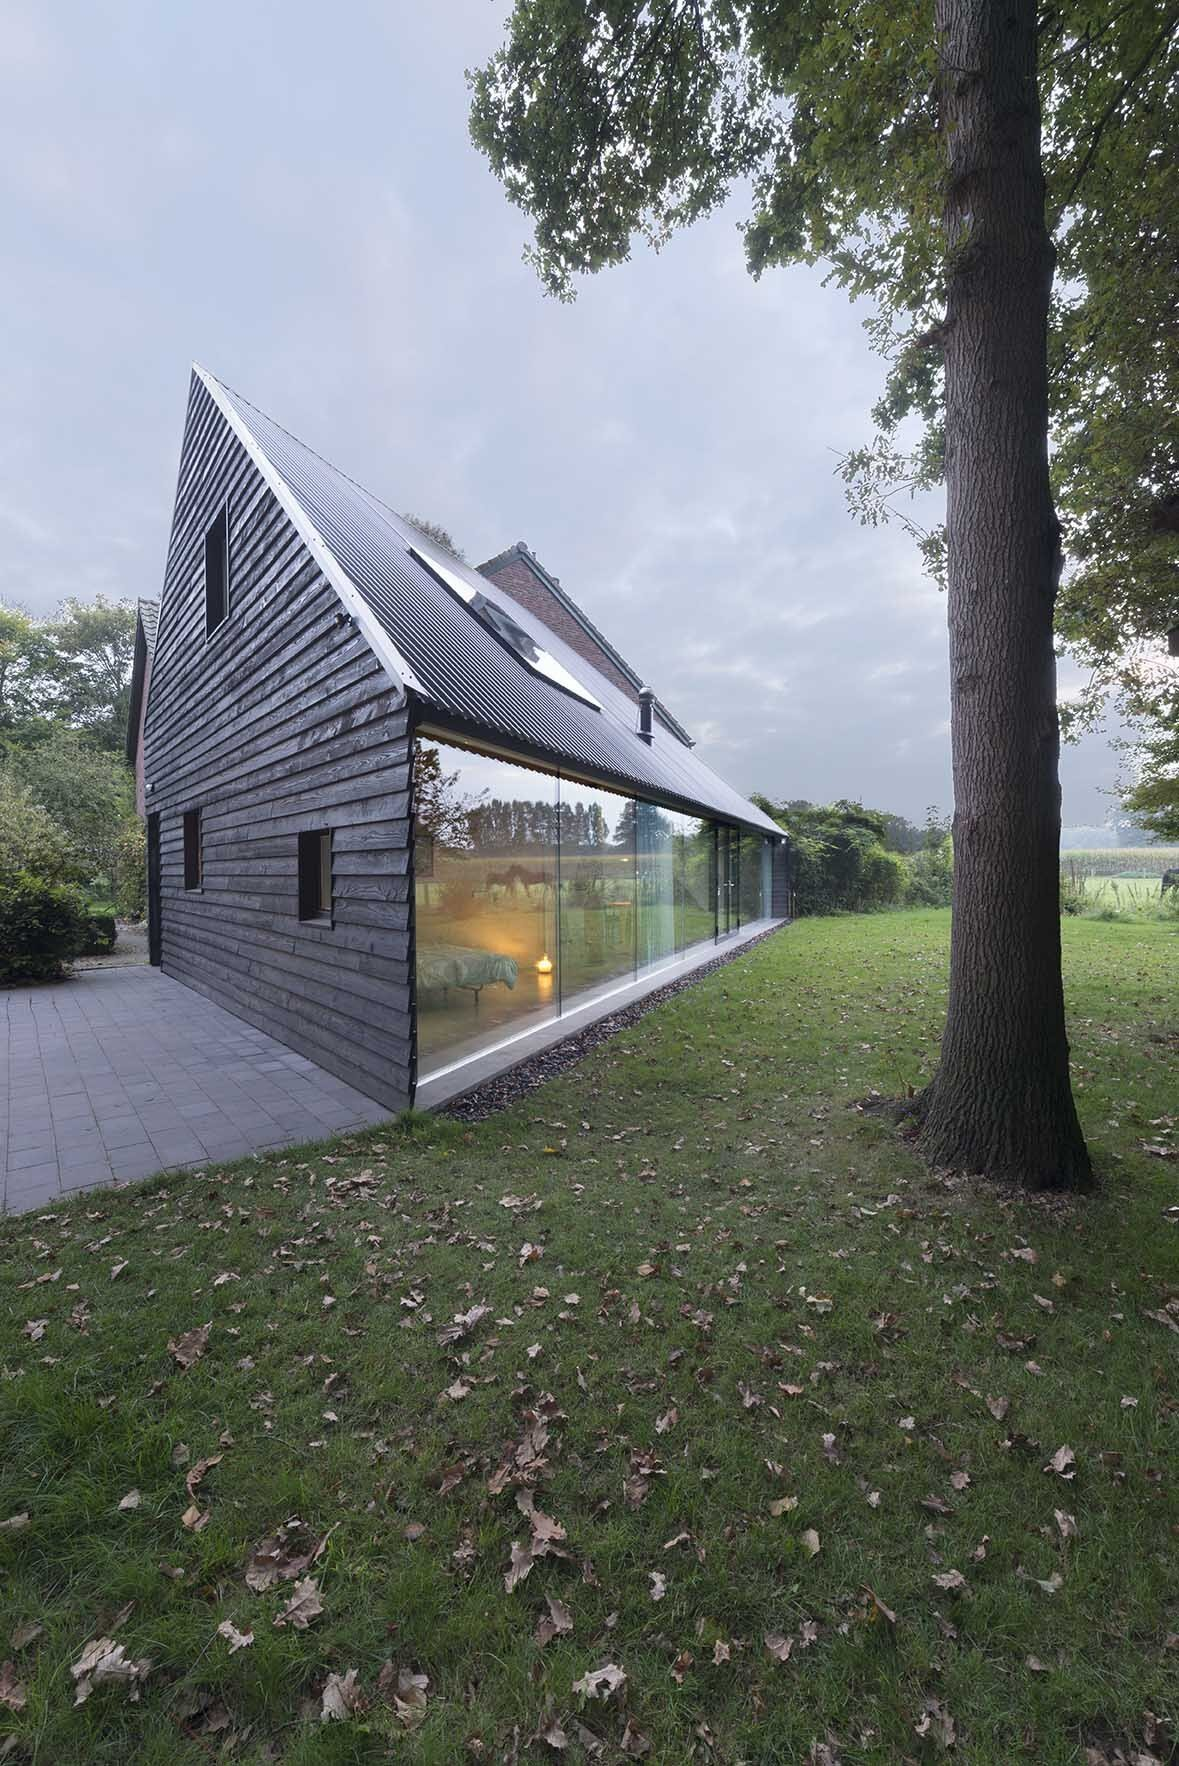 House in Almen - Barend Koolhaas - The Netherlands - Exterior - Humble Homes